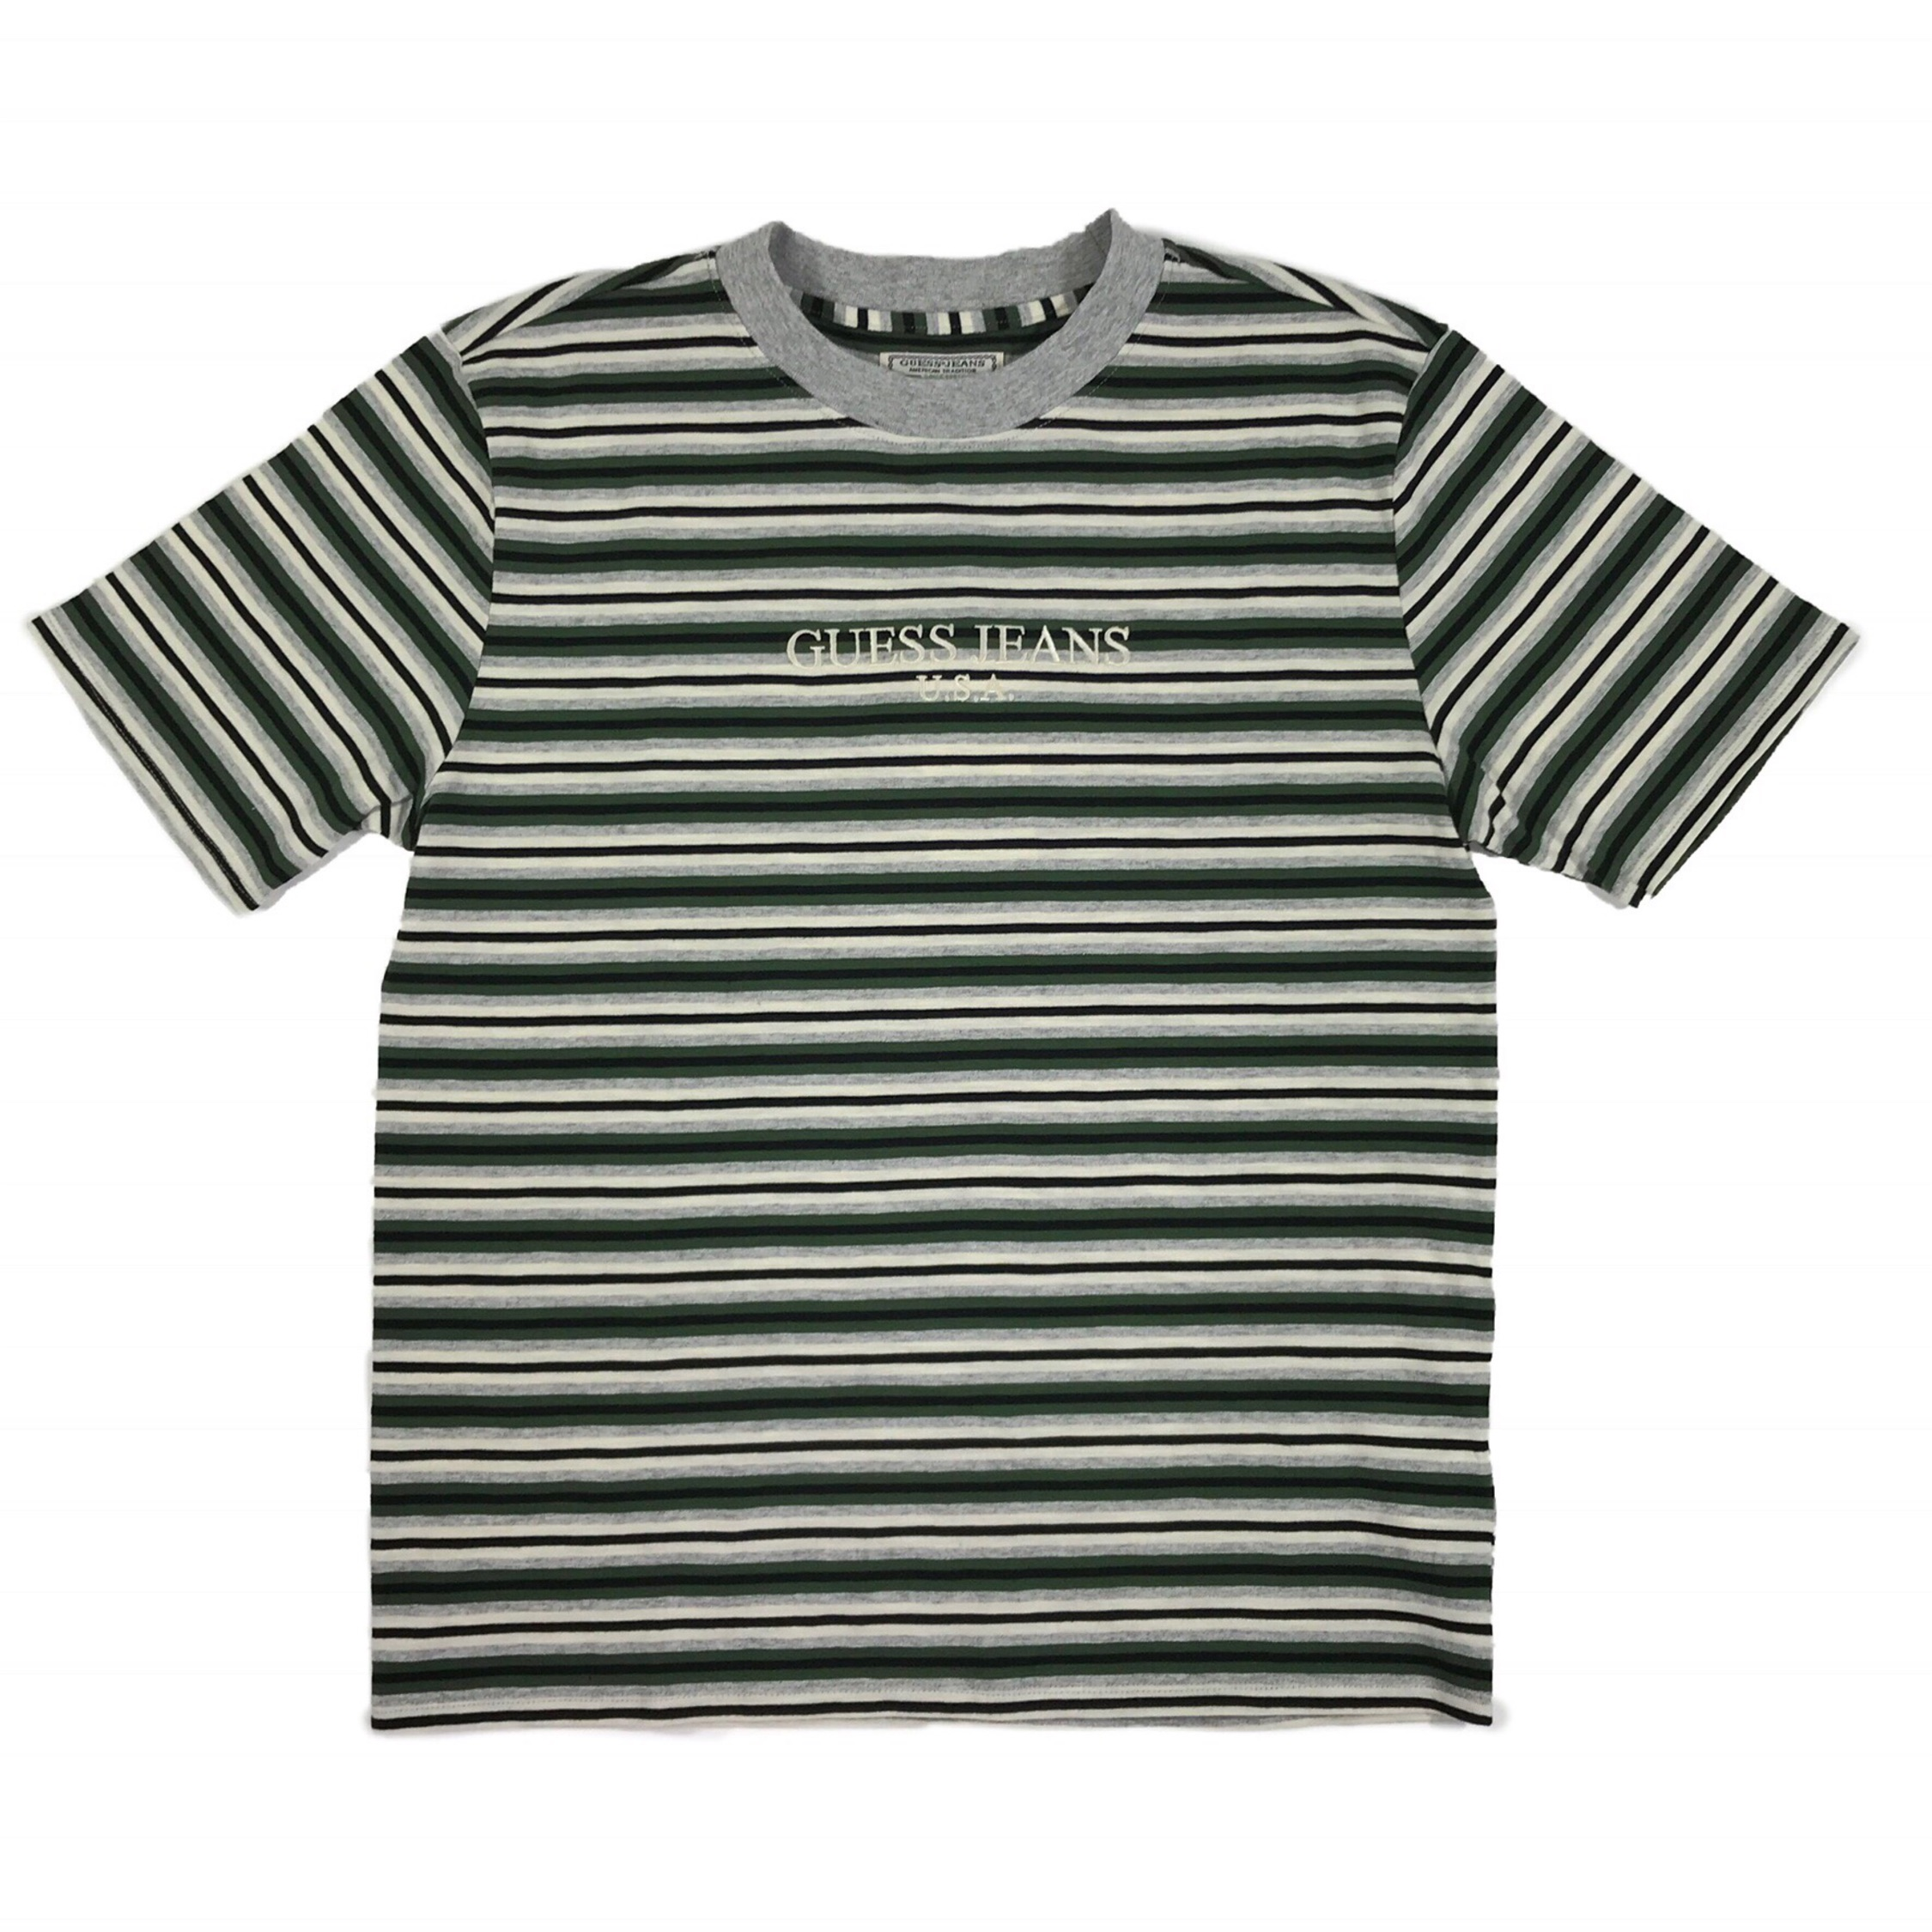 66ad65c6 Guess Jeans Striped T Shirt